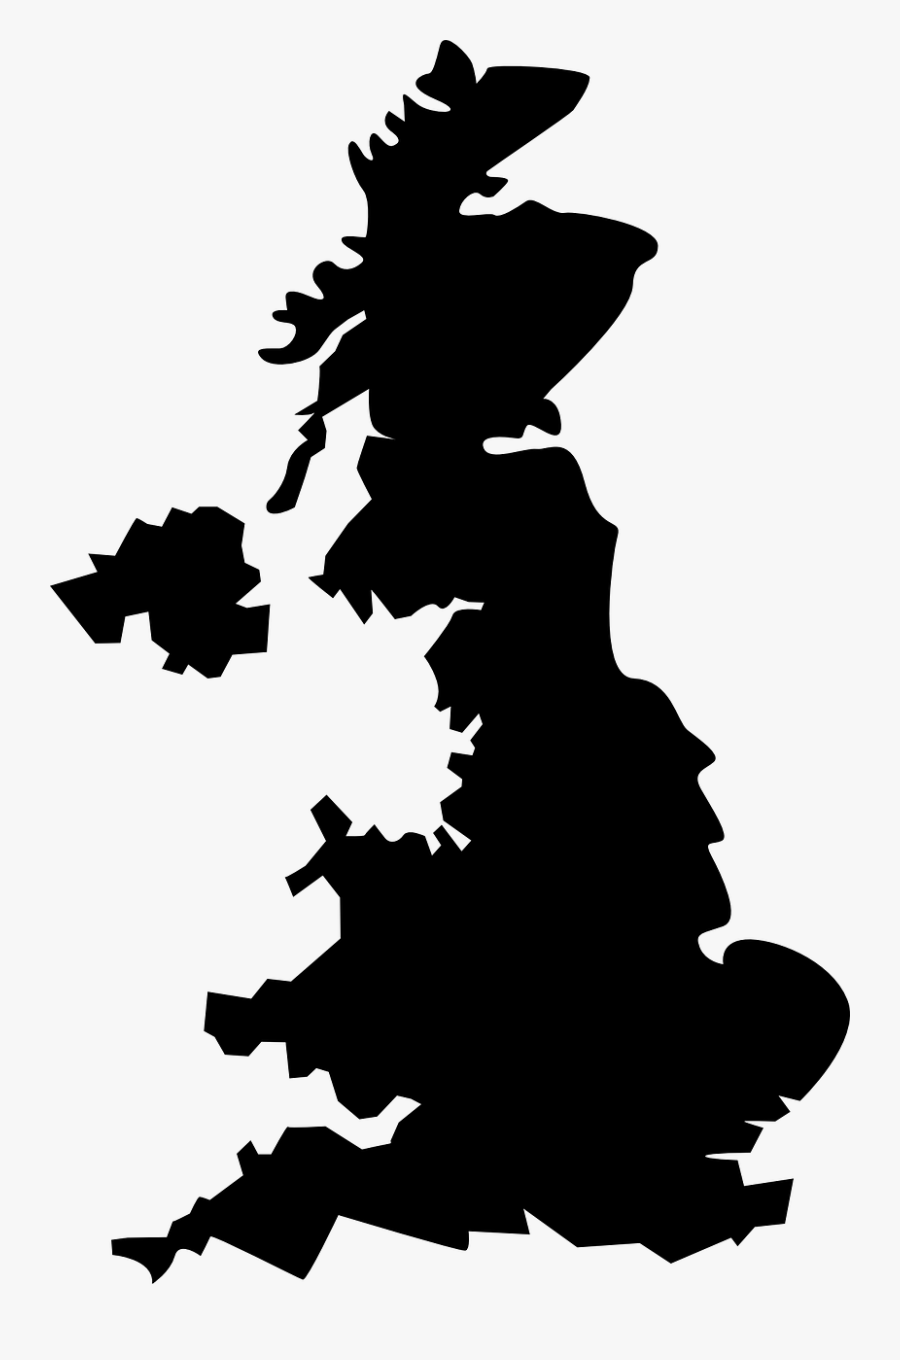 Map Of Mad Cow Disease Prevalence Vs - United Kingdom Map Black, Transparent Clipart